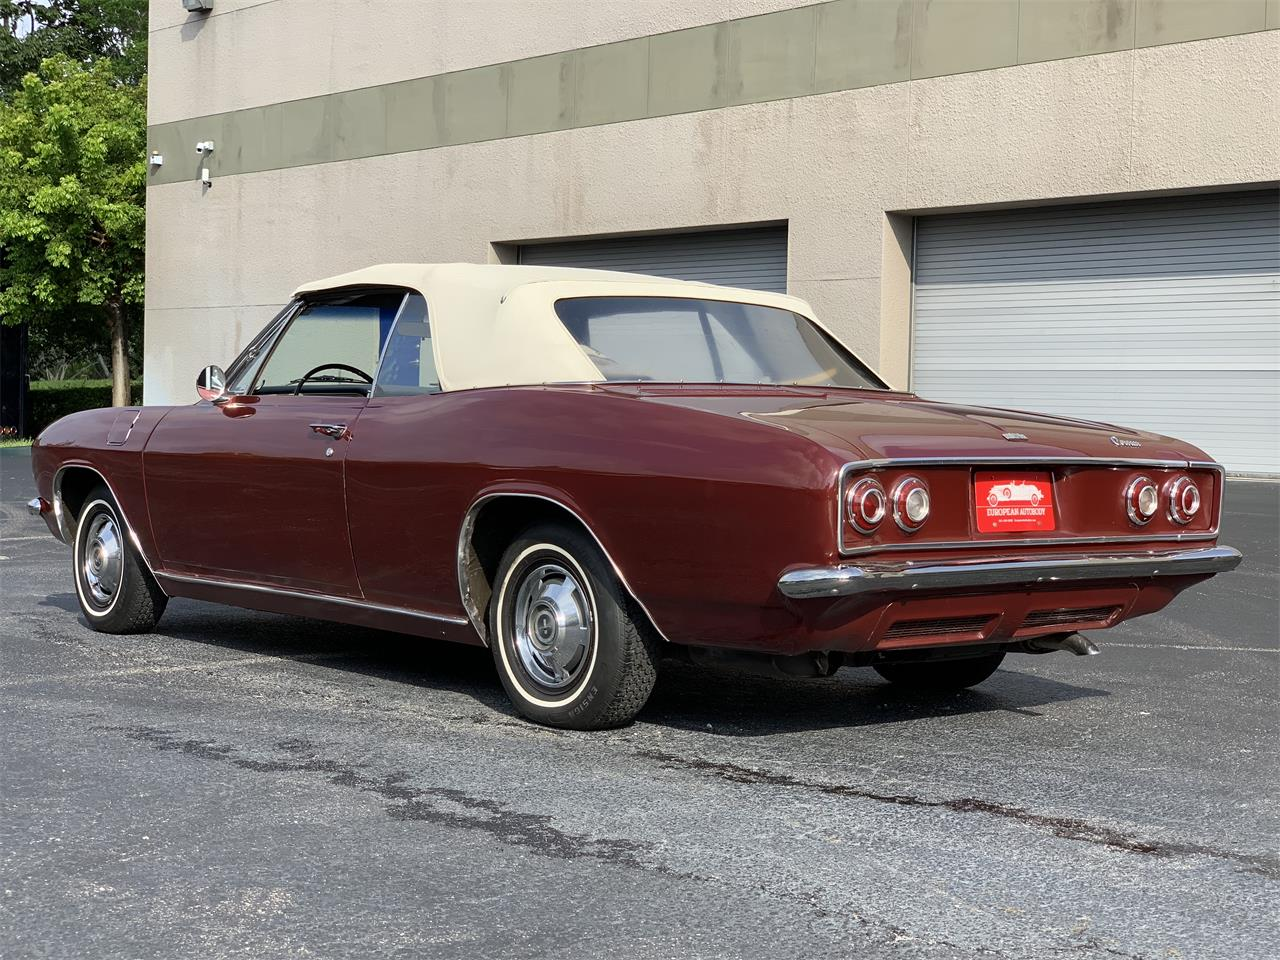 Large Picture of Classic '65 Chevrolet Corvair located in Boca Raton Florida Offered by European Autobody, Inc. - PFHX